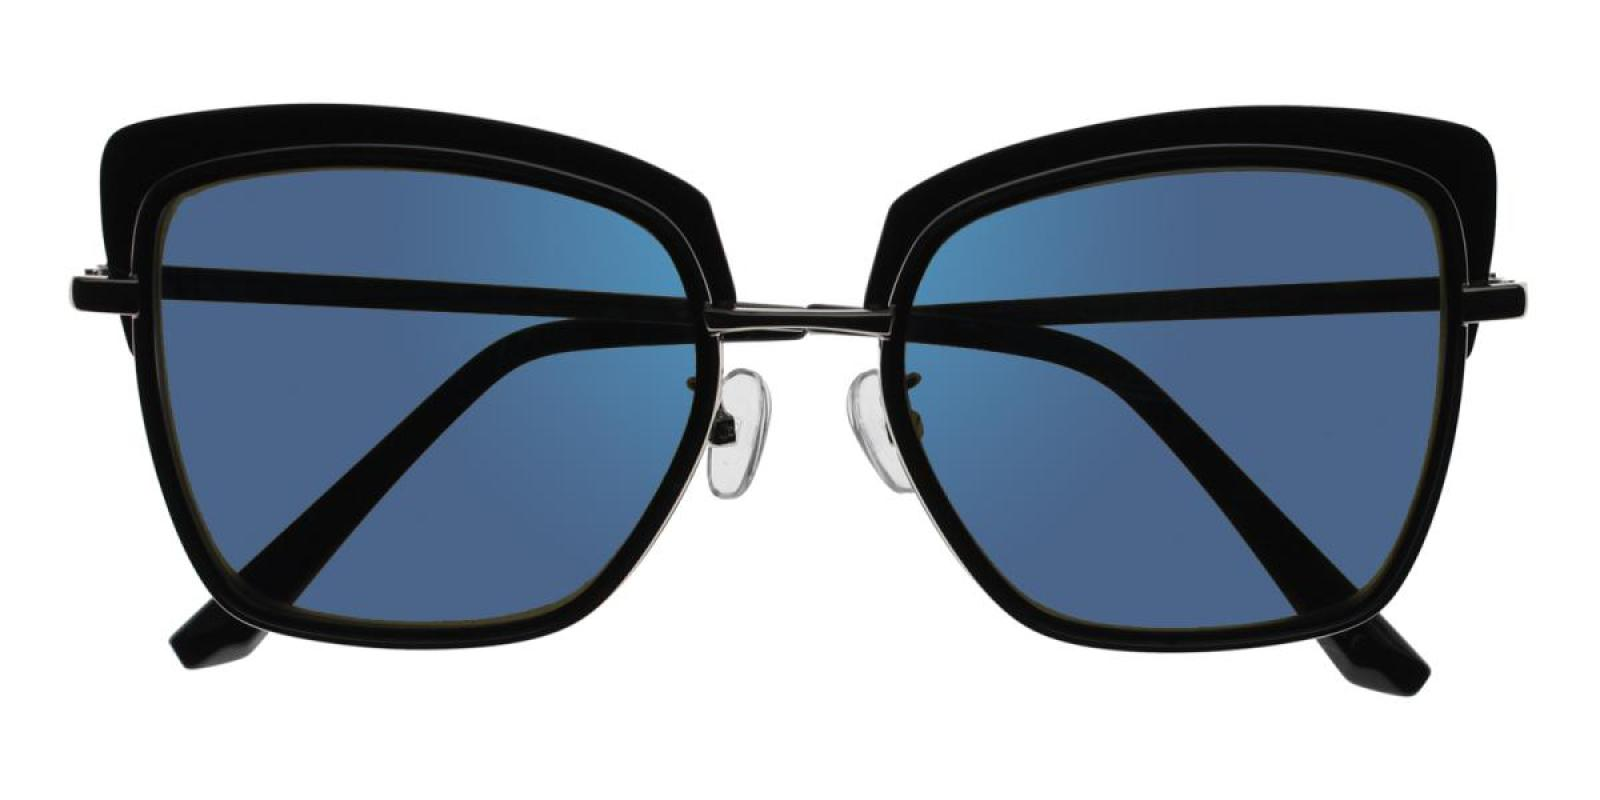 Riotousy-Black-Cat-Combination / Metal / TR-Sunglasses-detail